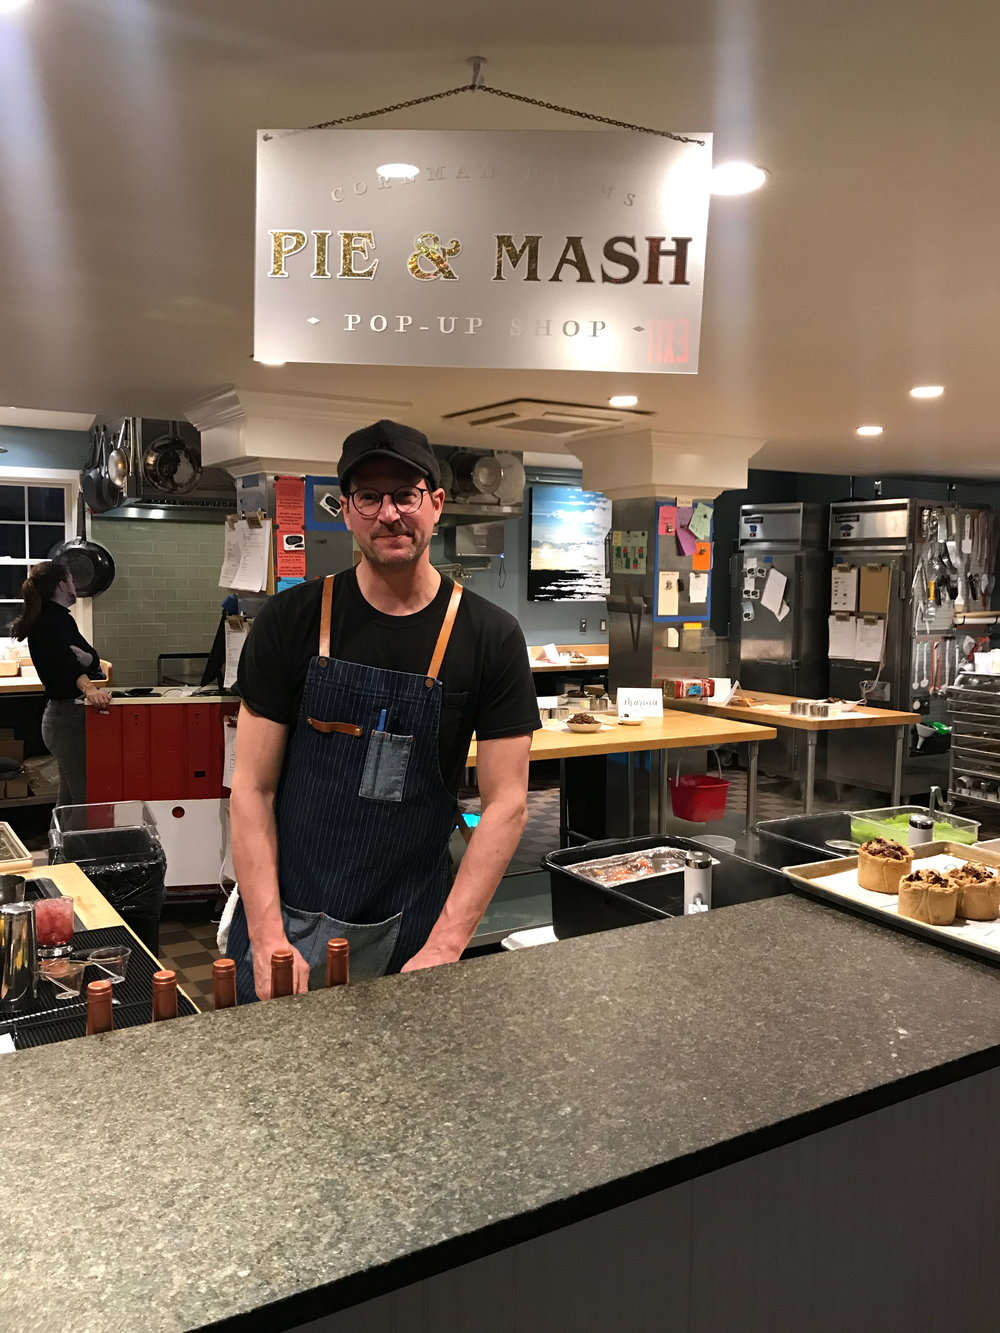 Pie & Mash Pop-Up